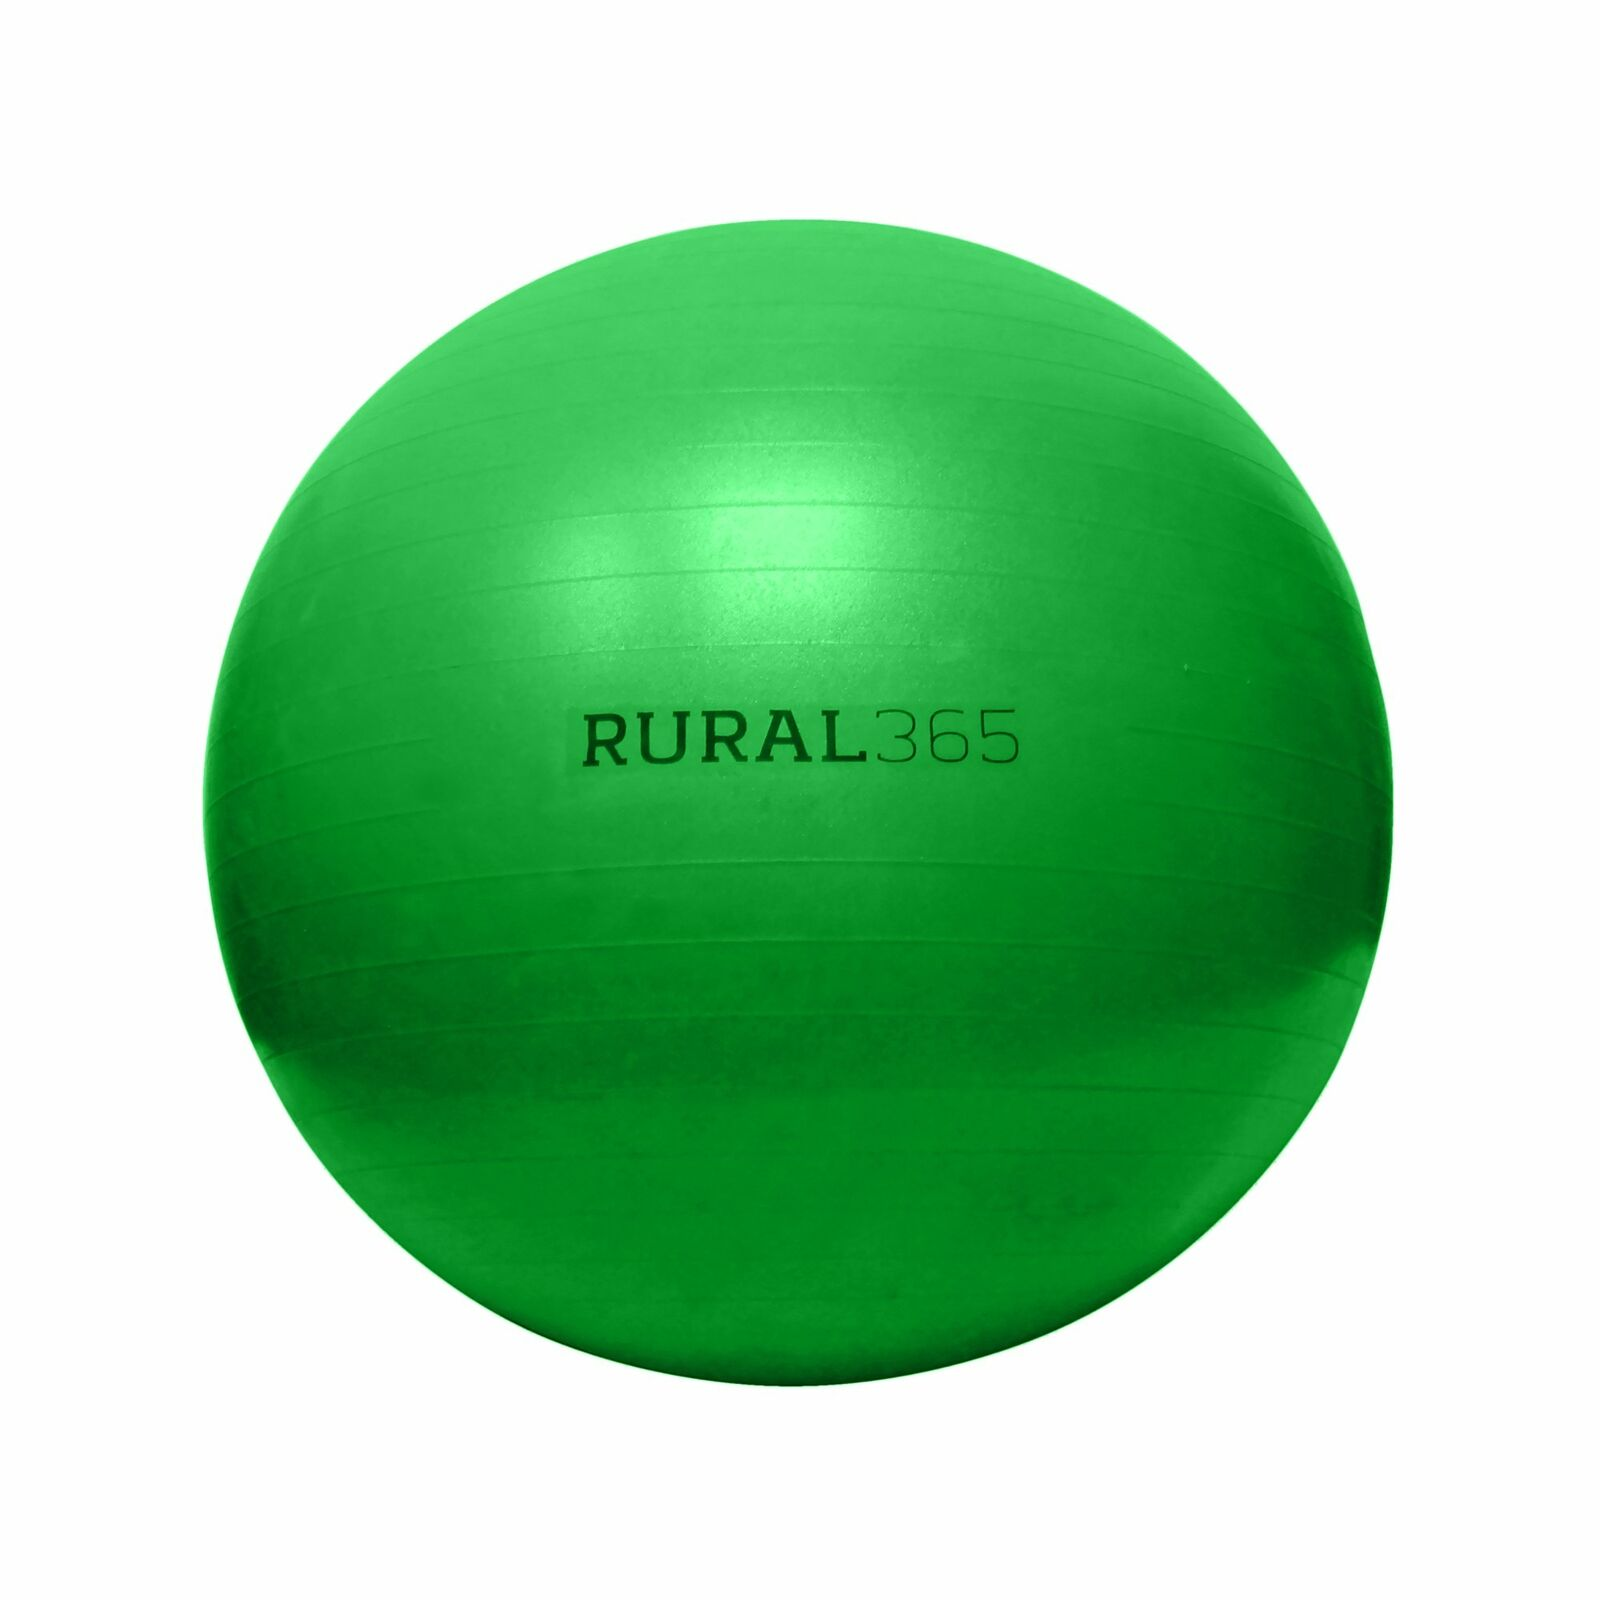 "Rural365   Large Horse Ball Toy in Green, 40"" Inch Ball Anti-Burst Giant Horse"